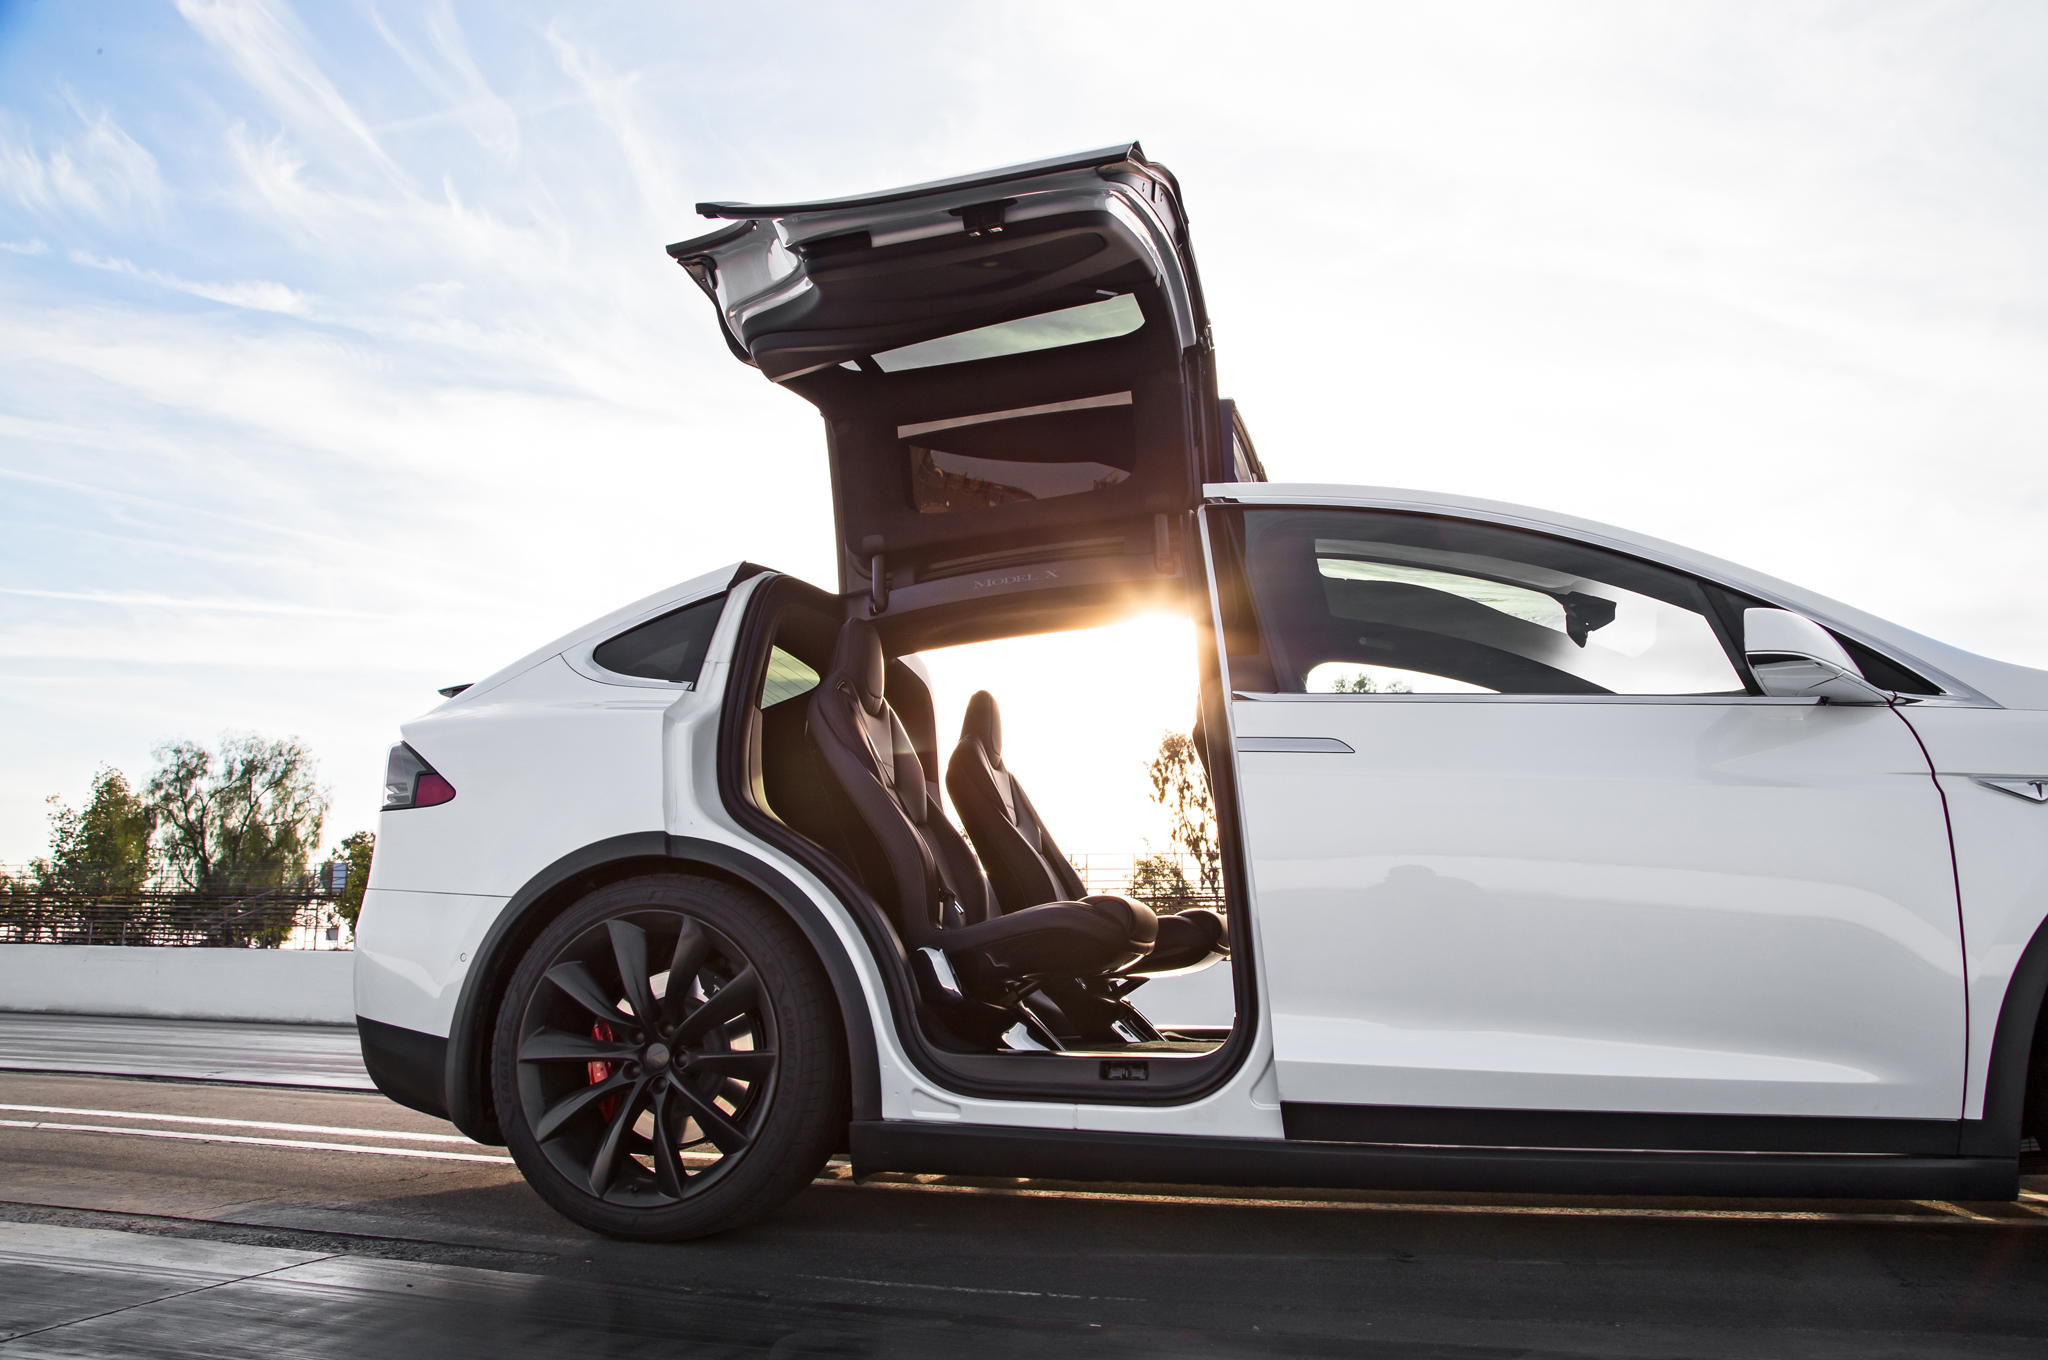 Tesla Model X Reviews - Tesla Model X Price, Photos, and ...